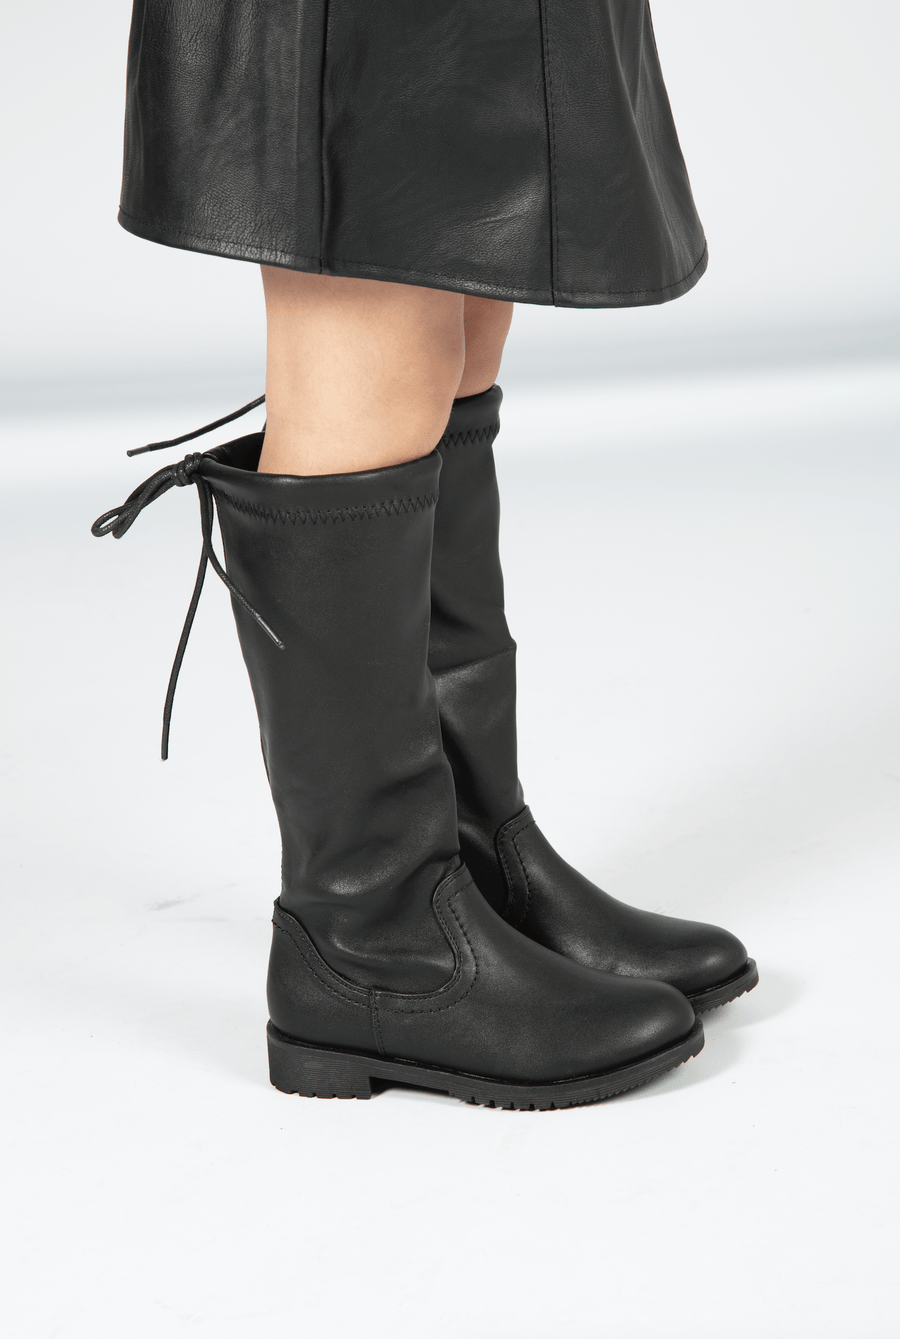 Rylee Knee High Boots With Tie Detailing Black Faux Leather Matte